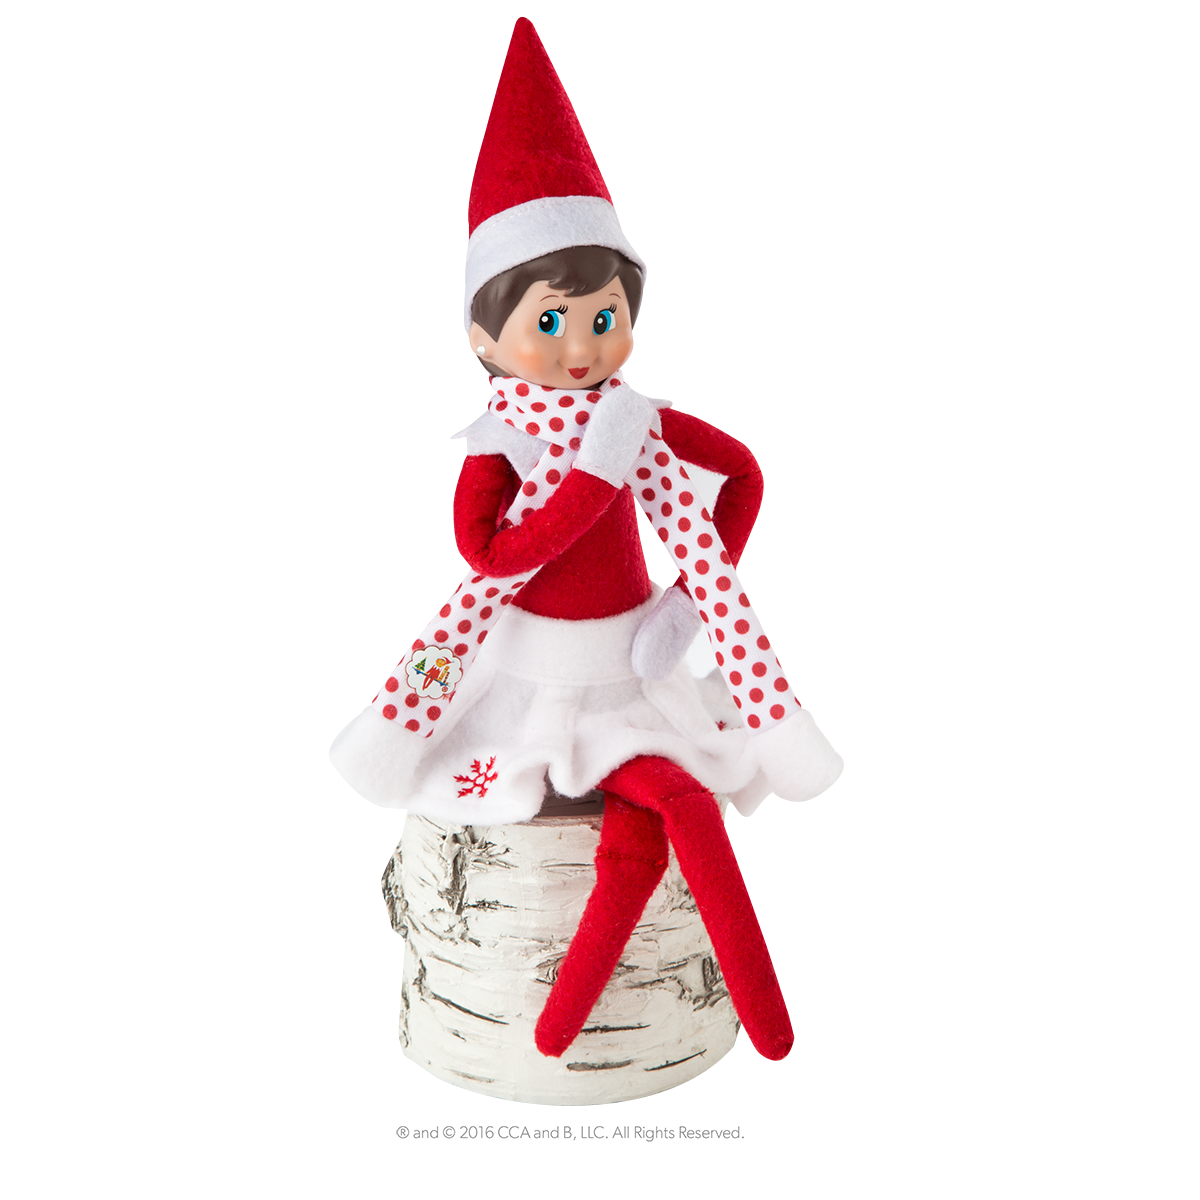 Christmas Elf On The Shelf Clipart.Elf On Shelf Transparent Png Clipart Free Download Ywd